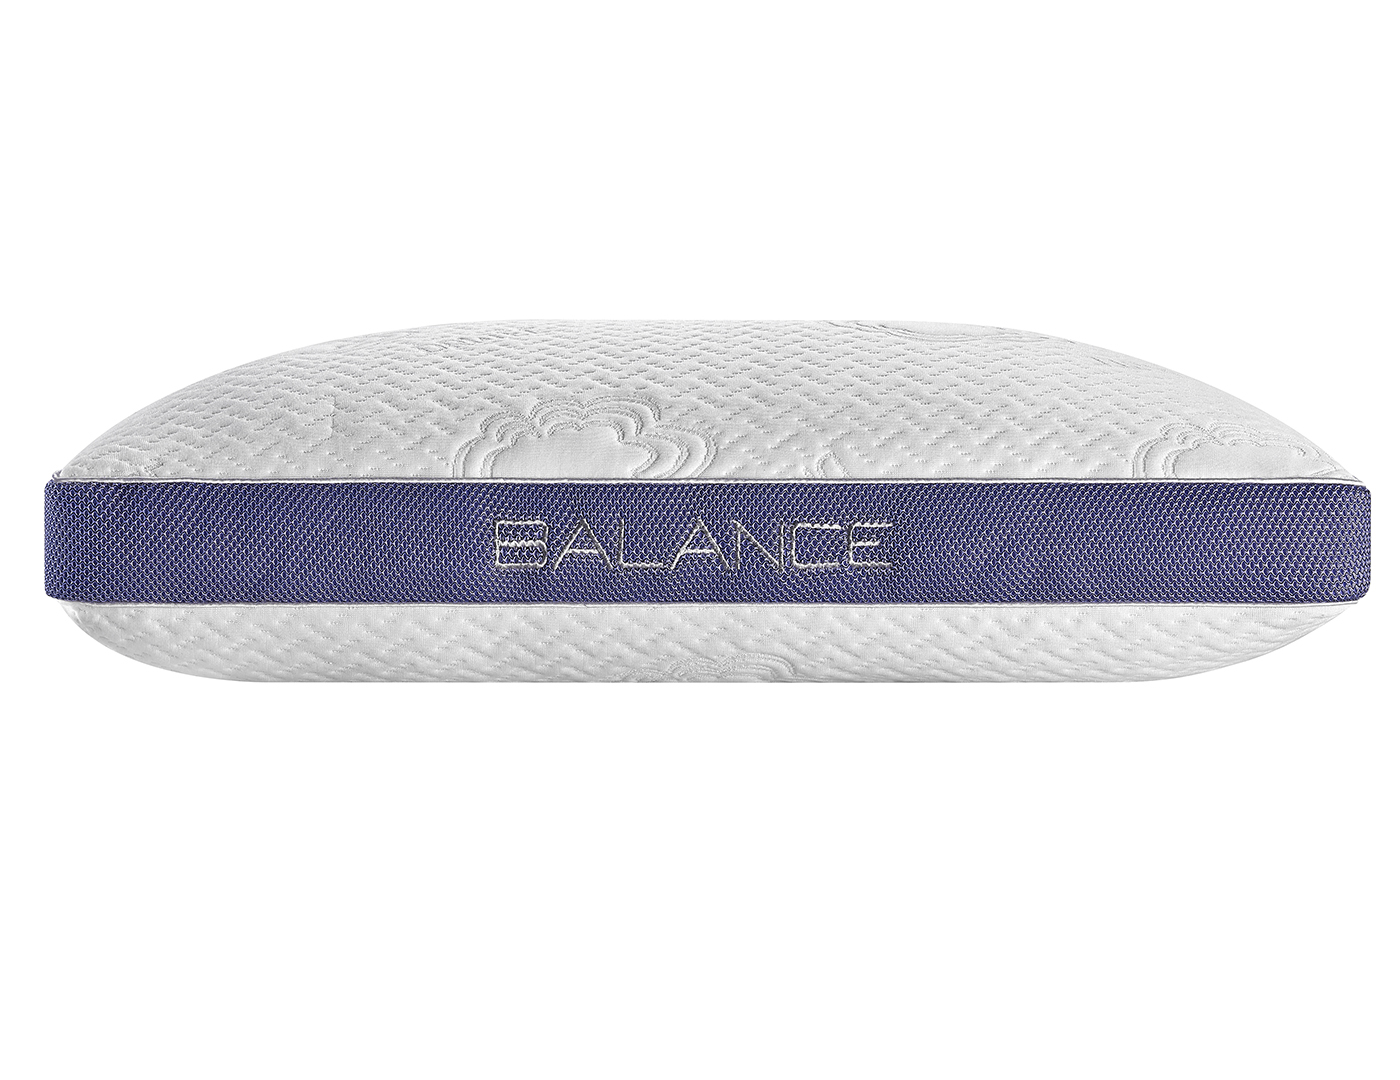 bedgear Balance 1.0 Queen Pillow